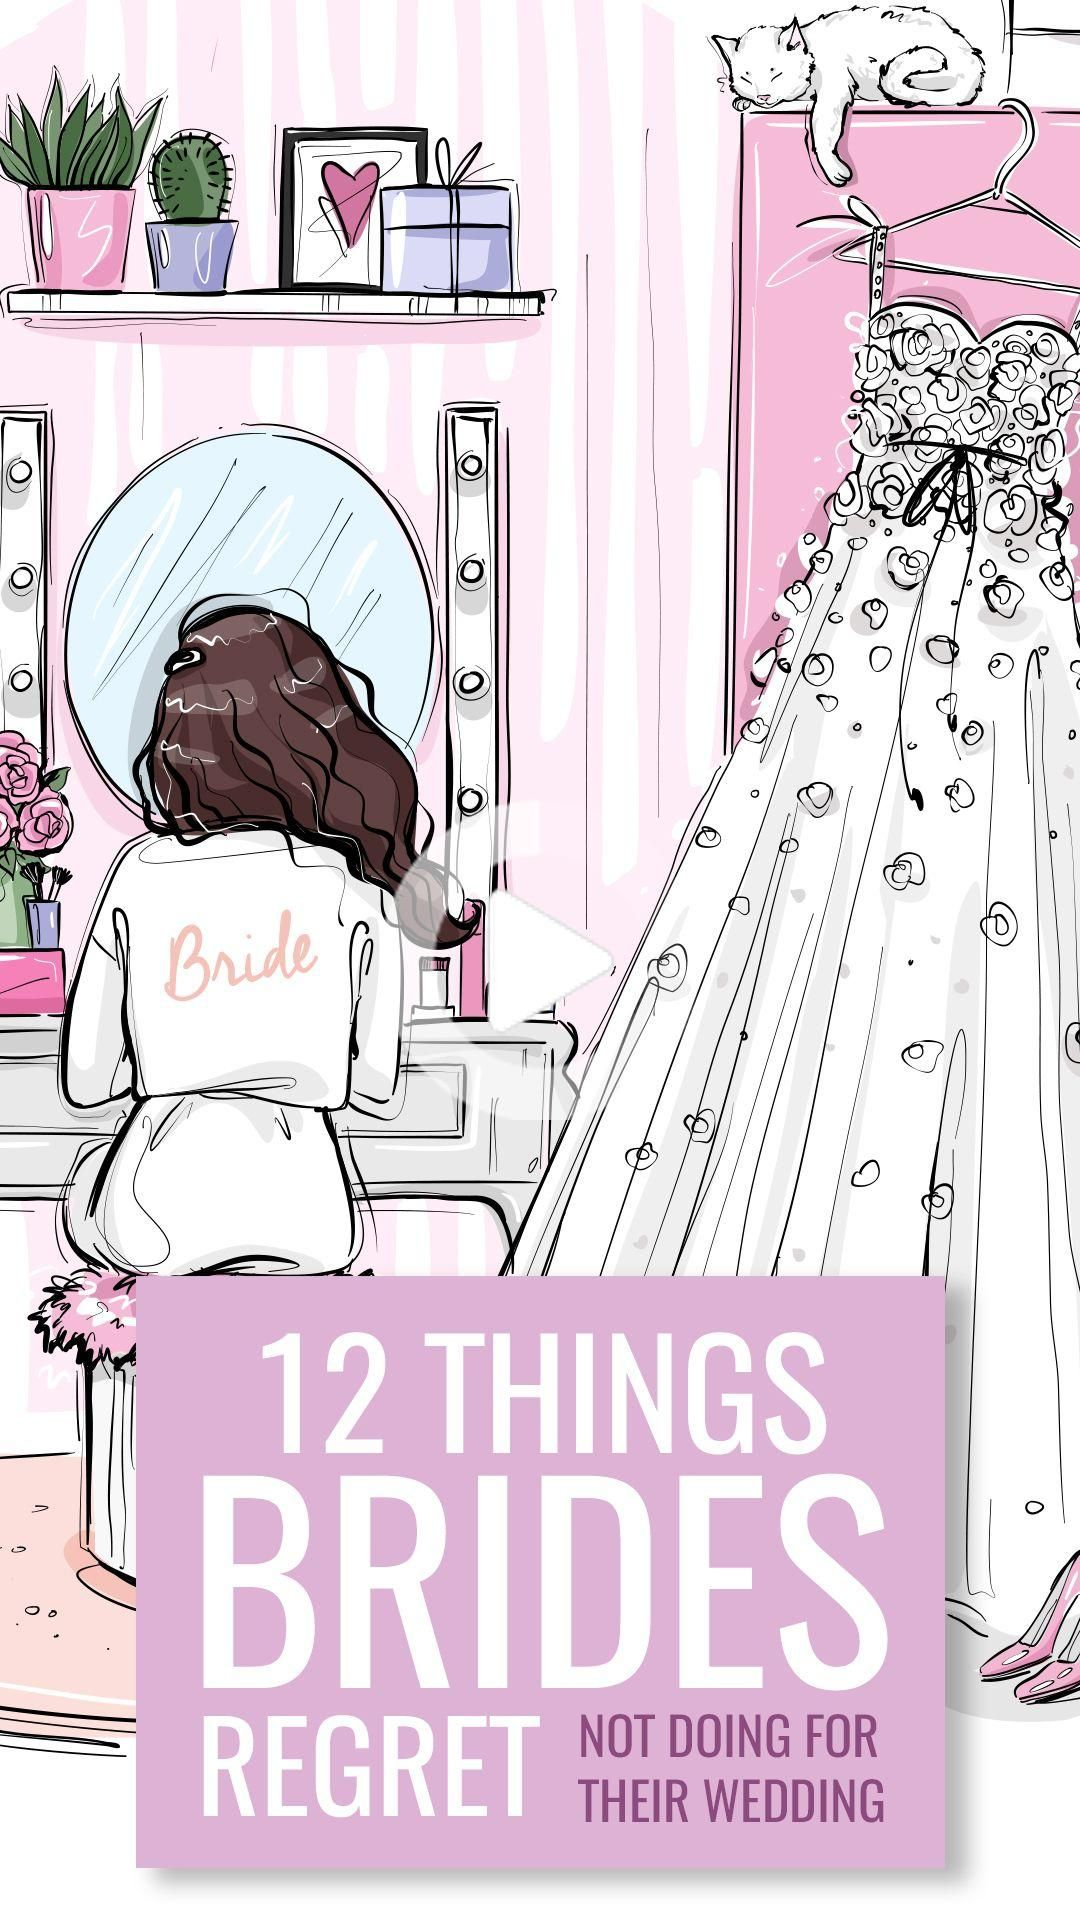 Wedding days are filled with many do's and don'ts but there are few things that brides regret not do...